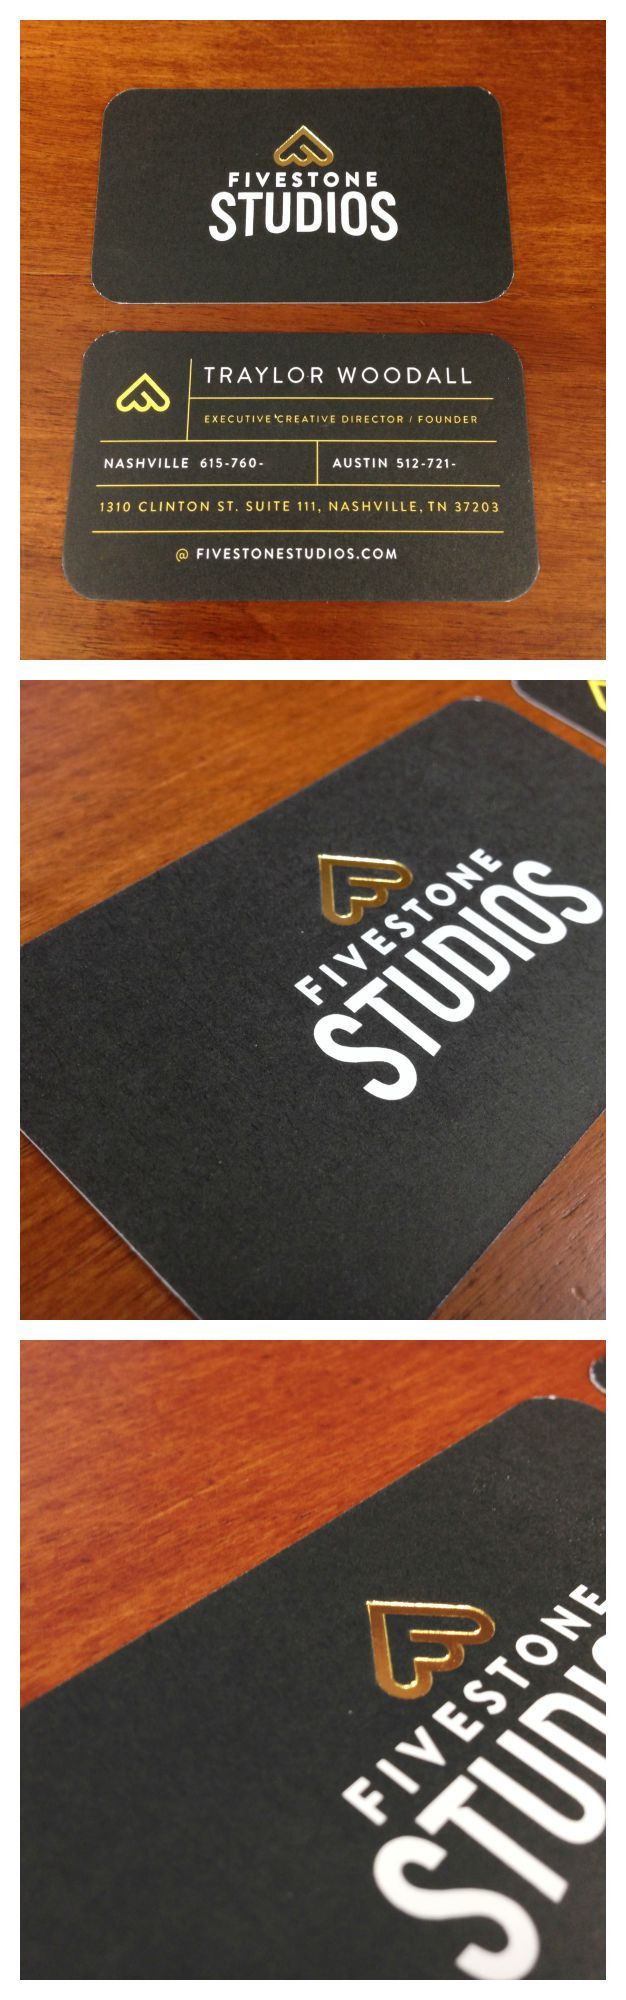 47 best business cards images on pinterest carte de visite visit gold foil stamped business cards email and phone numbers have been removed for privacy purposes reheart Image collections